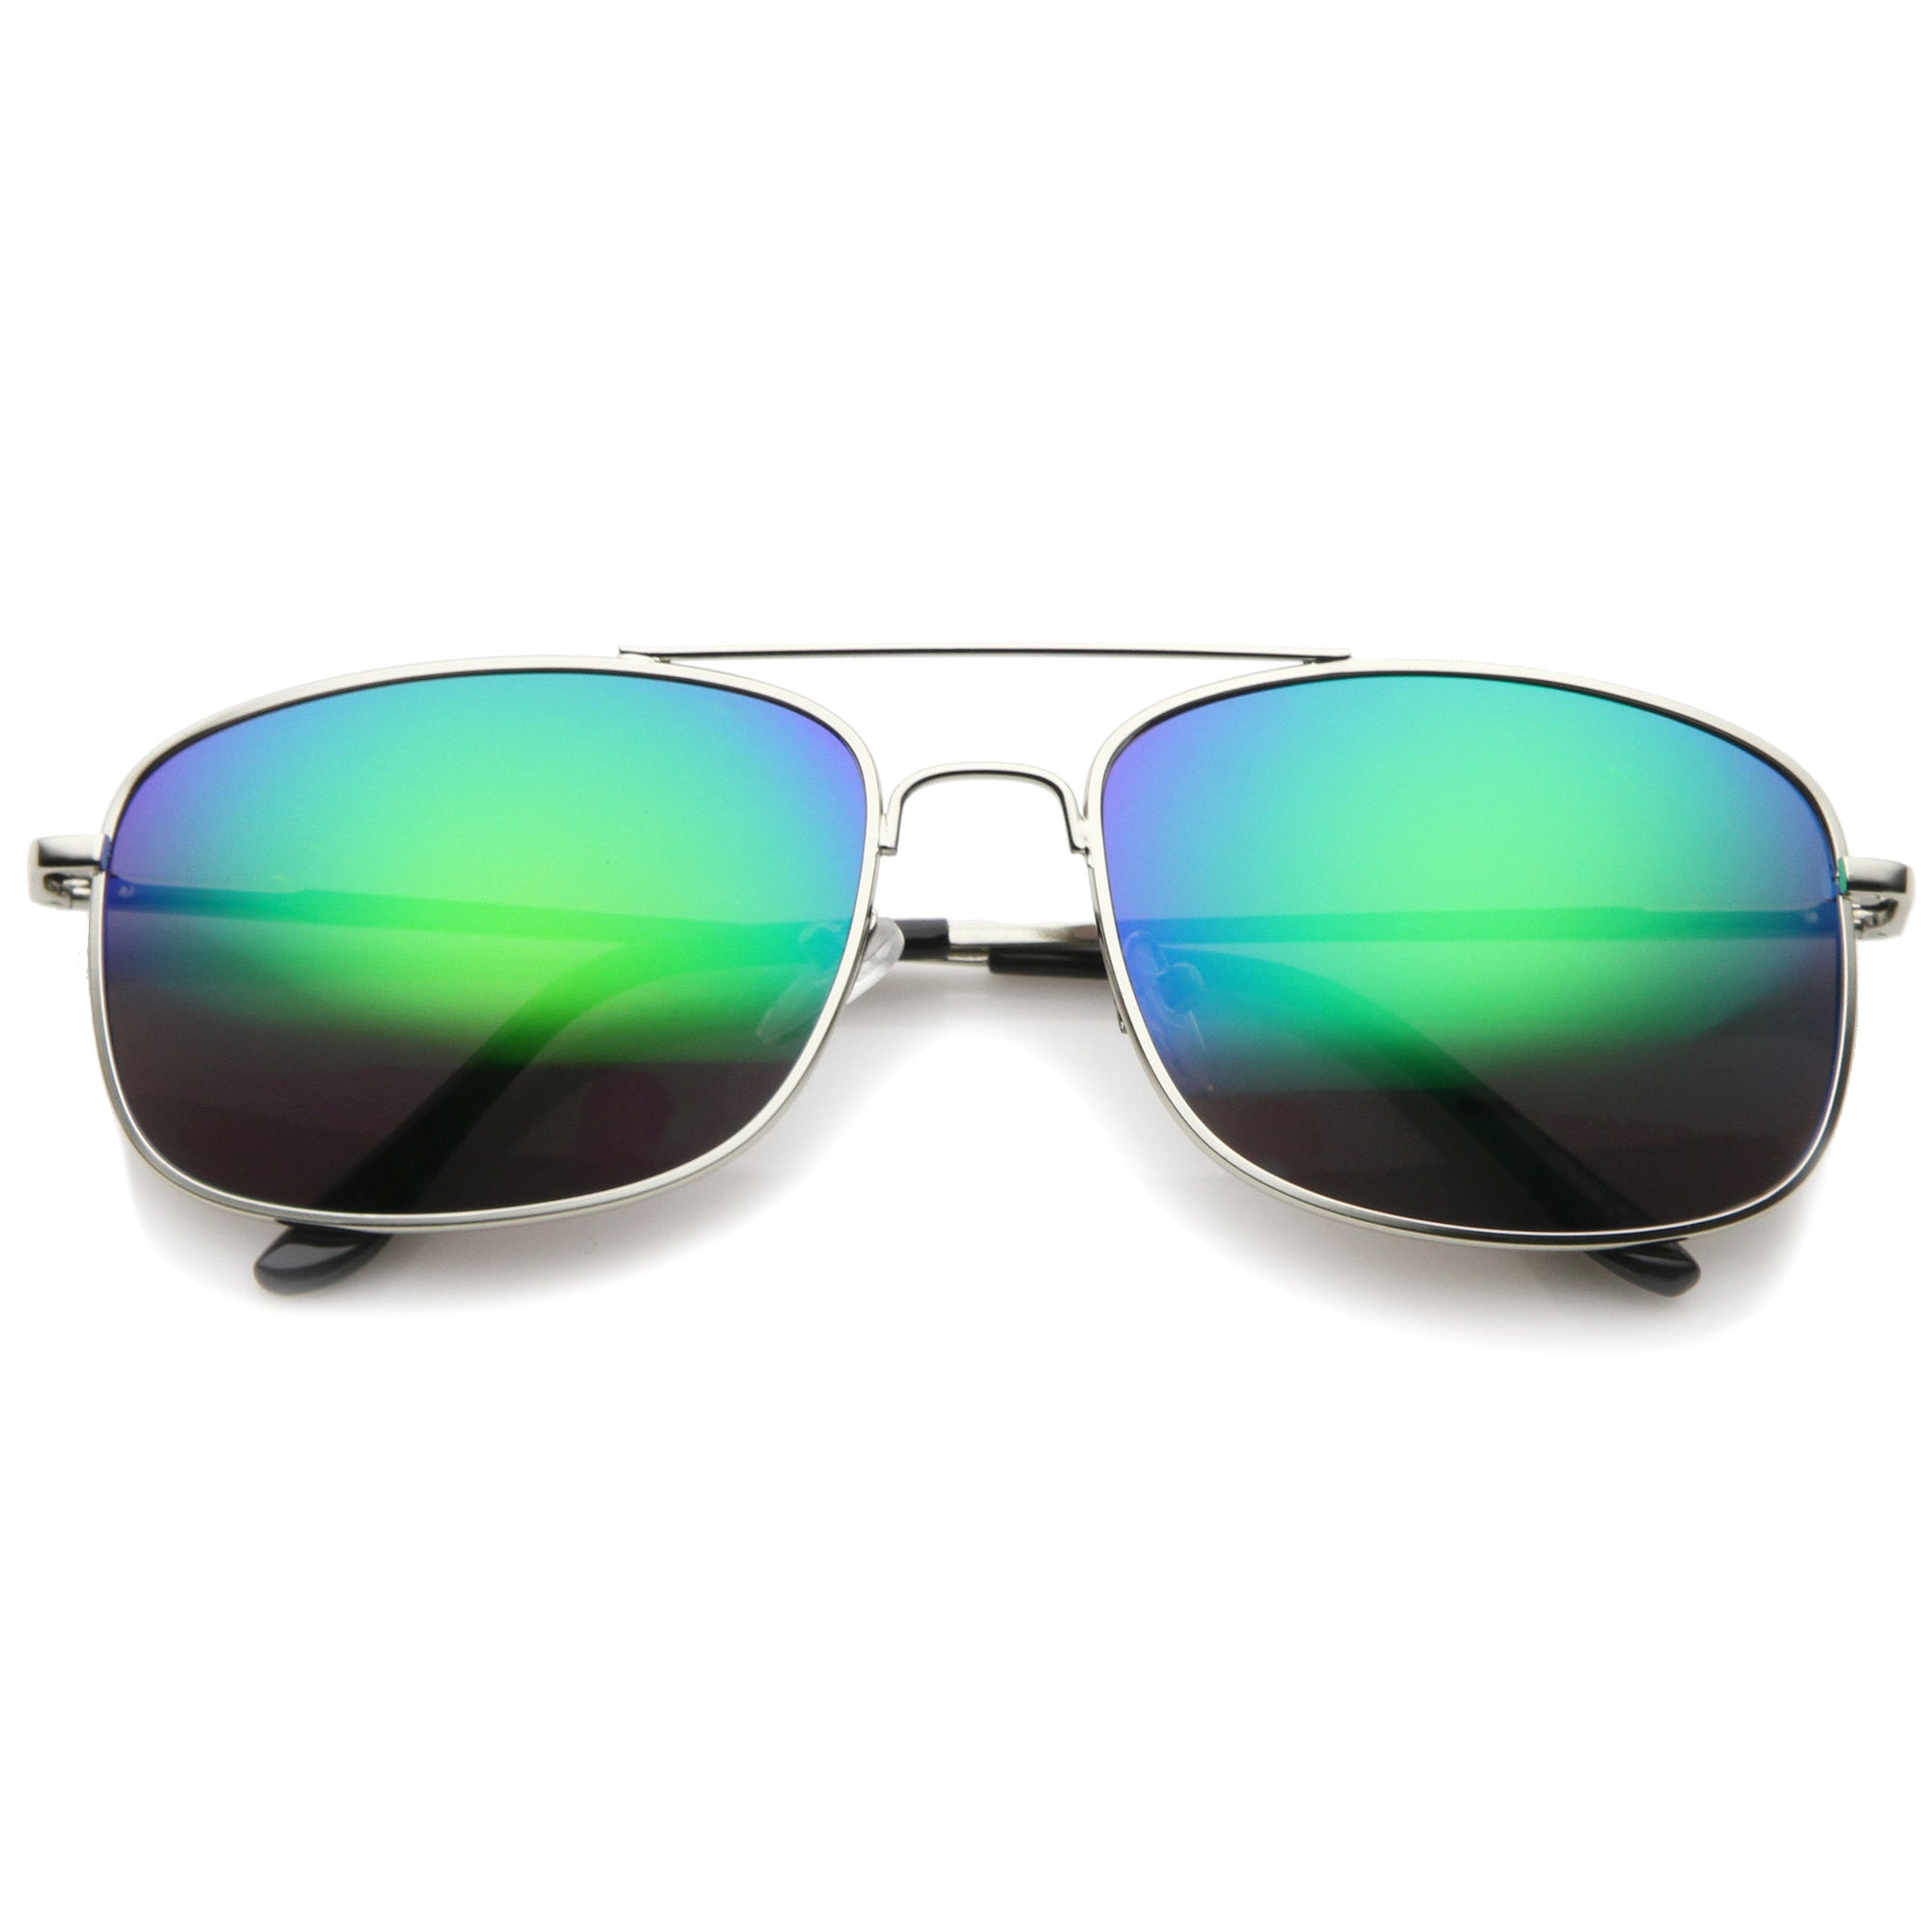 ea73ab9c237 Men s Sports Silver Metal Mirror Lens Aviator Sunglasses A027. Silver  Mirror. Silver Mirror. Silver Midnight. Silver Ice. A027-01